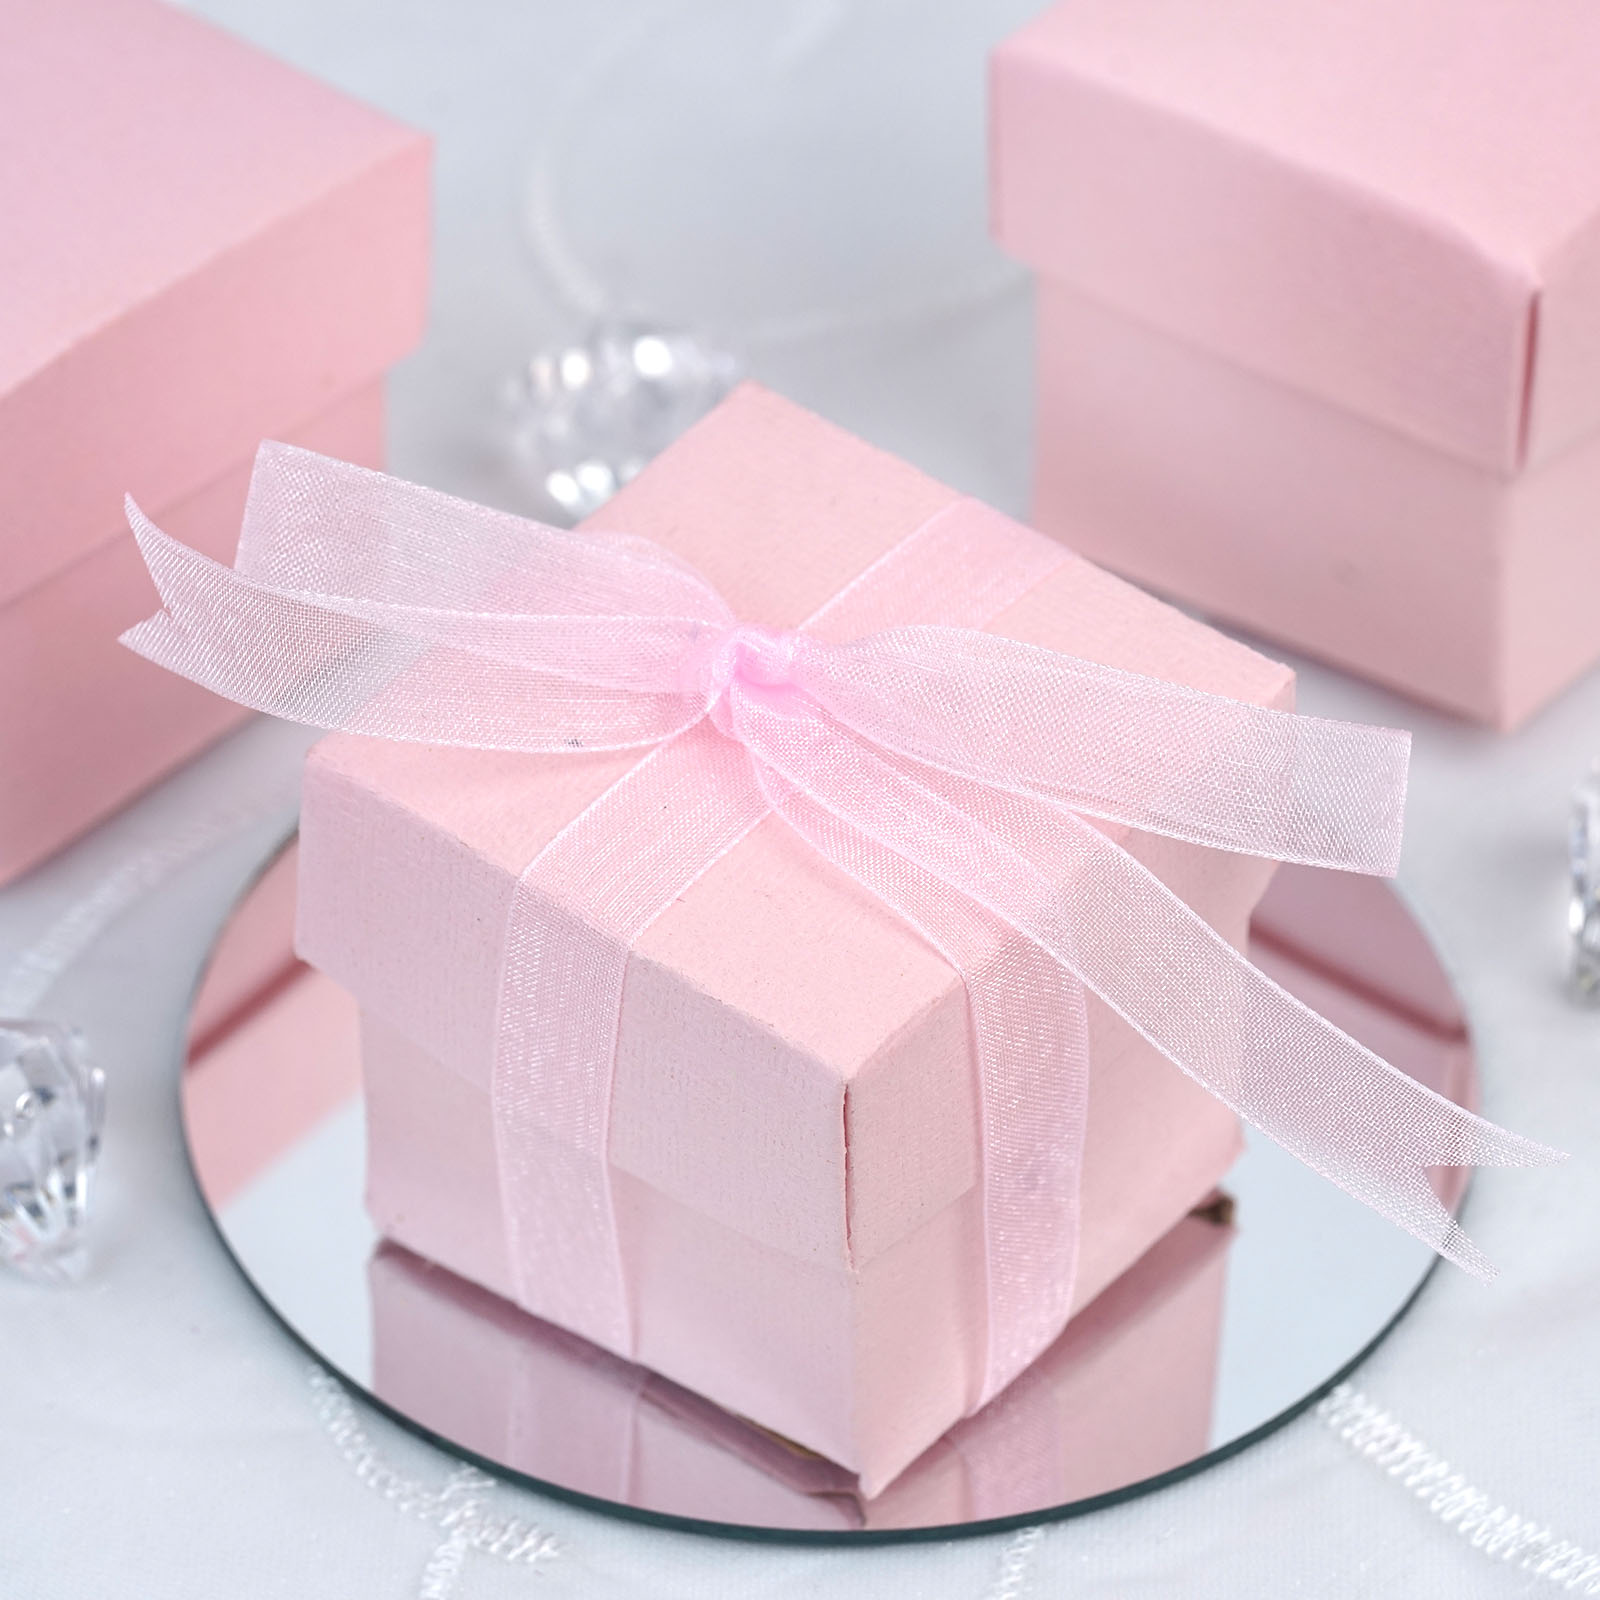 100 2pc Wedding Favor Boxes Party Gift Supplies Cute Wedding ...